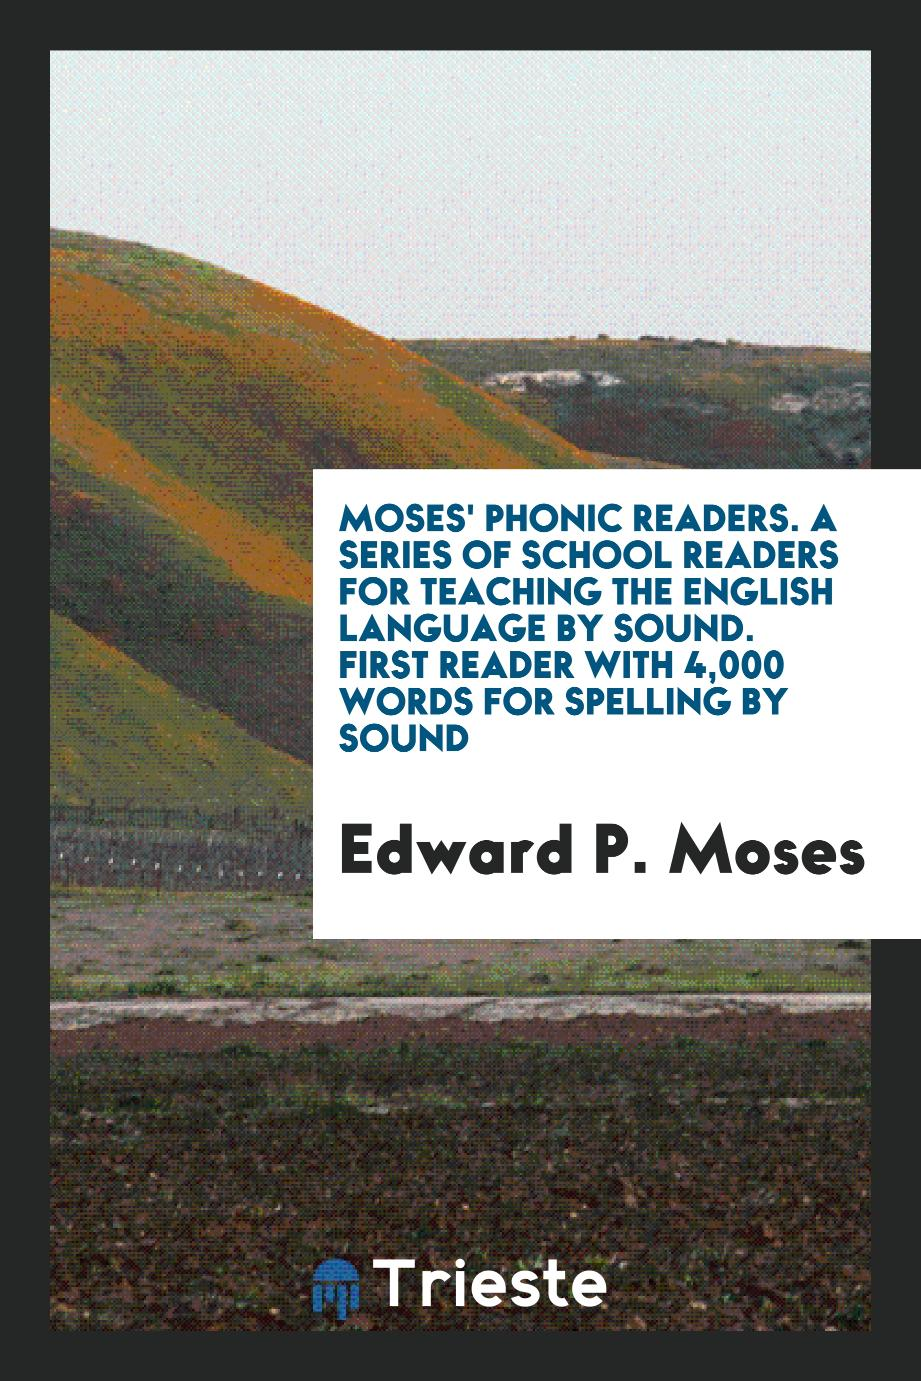 Moses' Phonic Readers. A Series of School Readers for Teaching the English Language by Sound. First Reader with 4,000 Words for Spelling by Sound